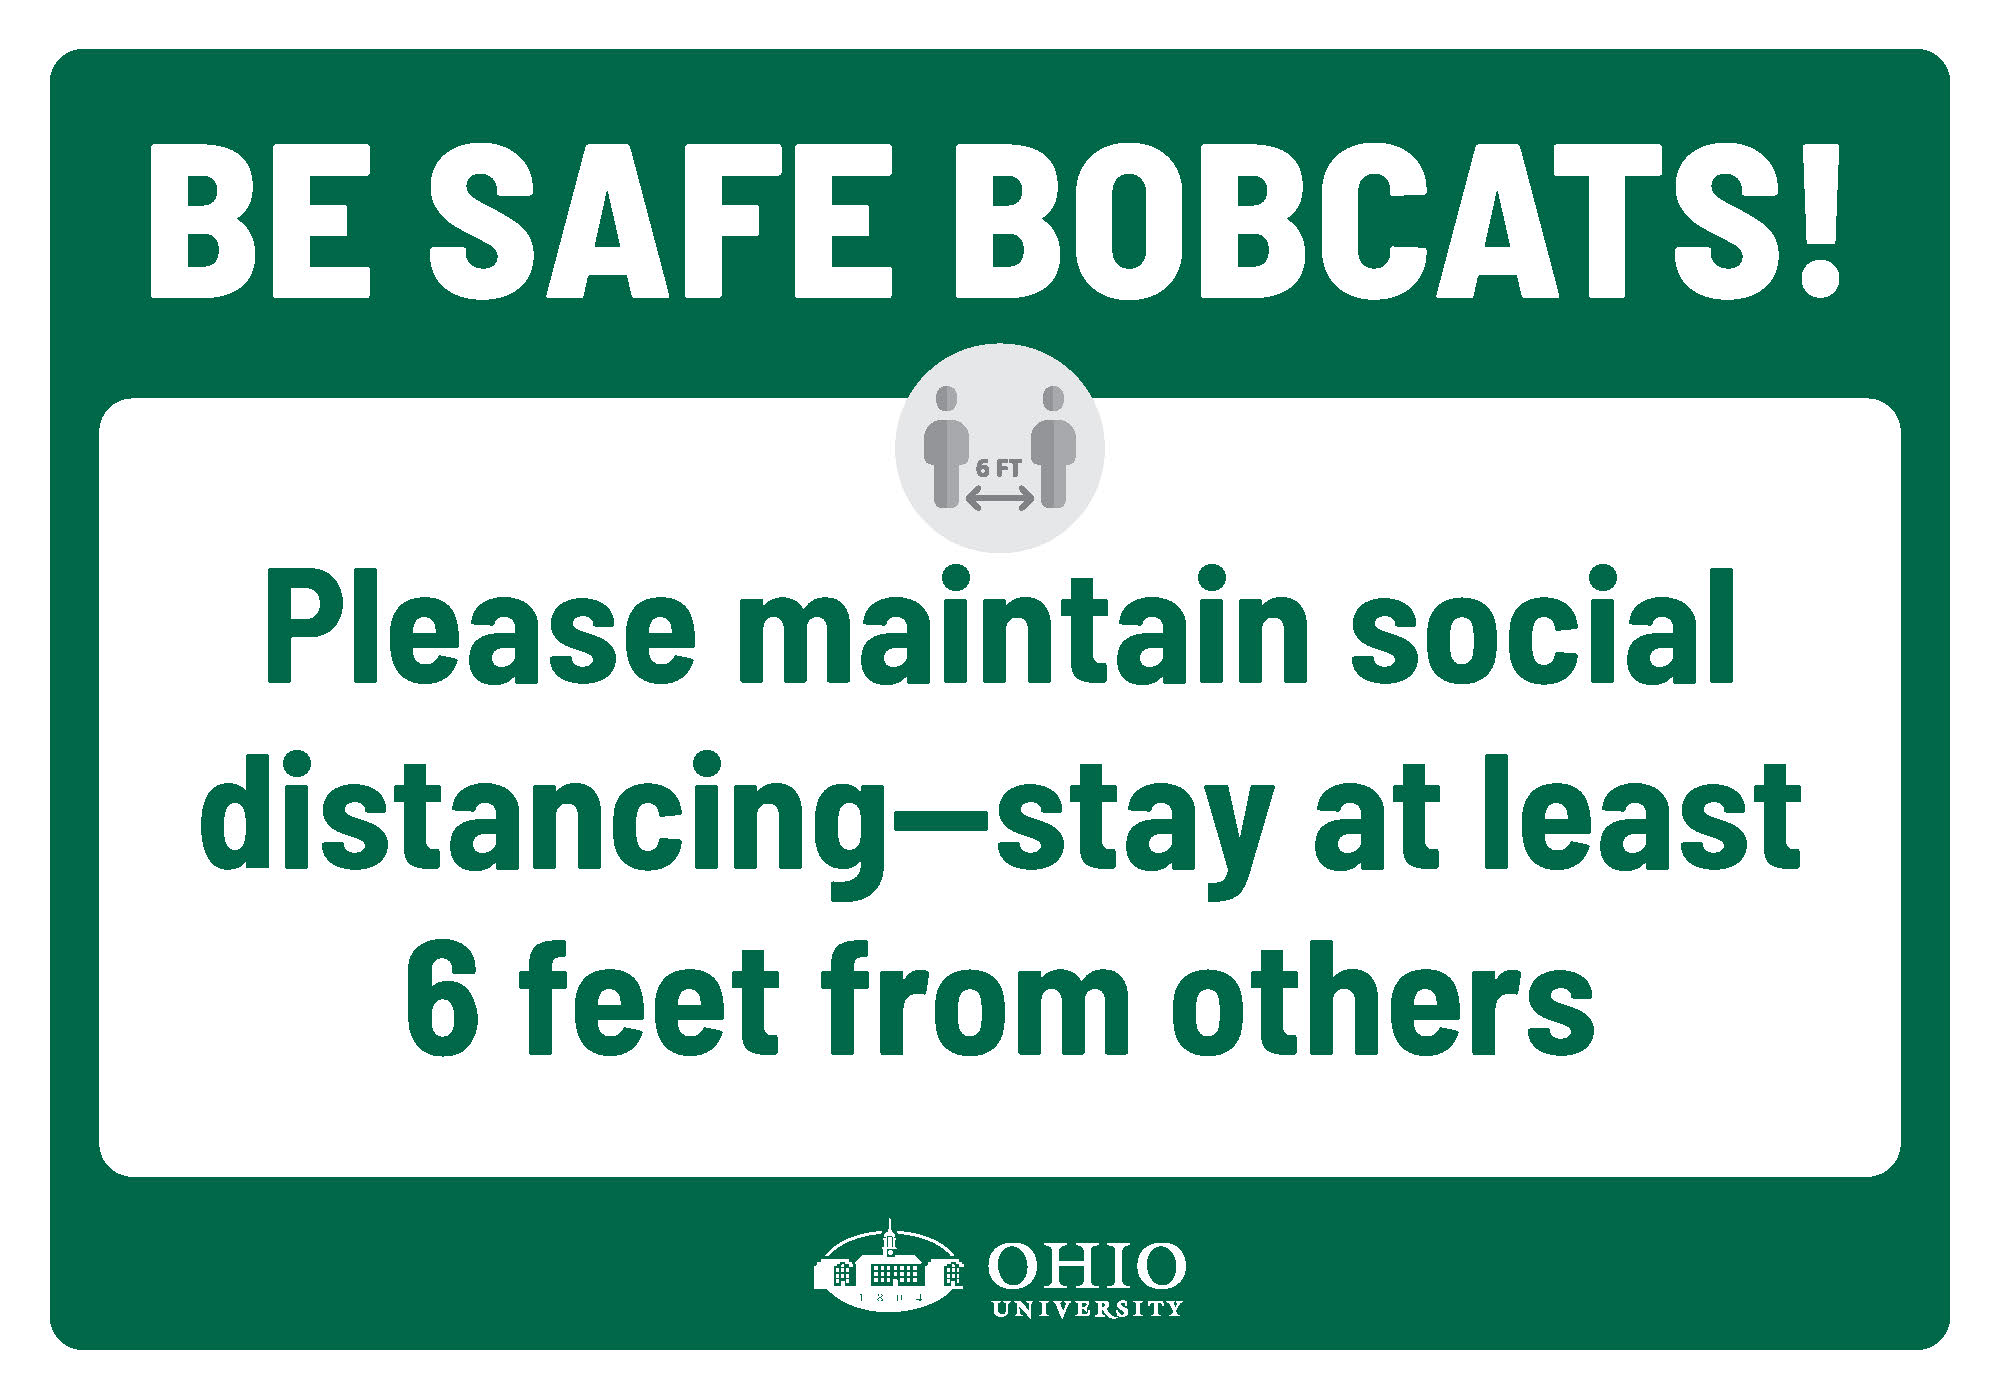 Sign that says: Be safe Bobcats! Please maintain social distancing — stay at least 6 feet from others.